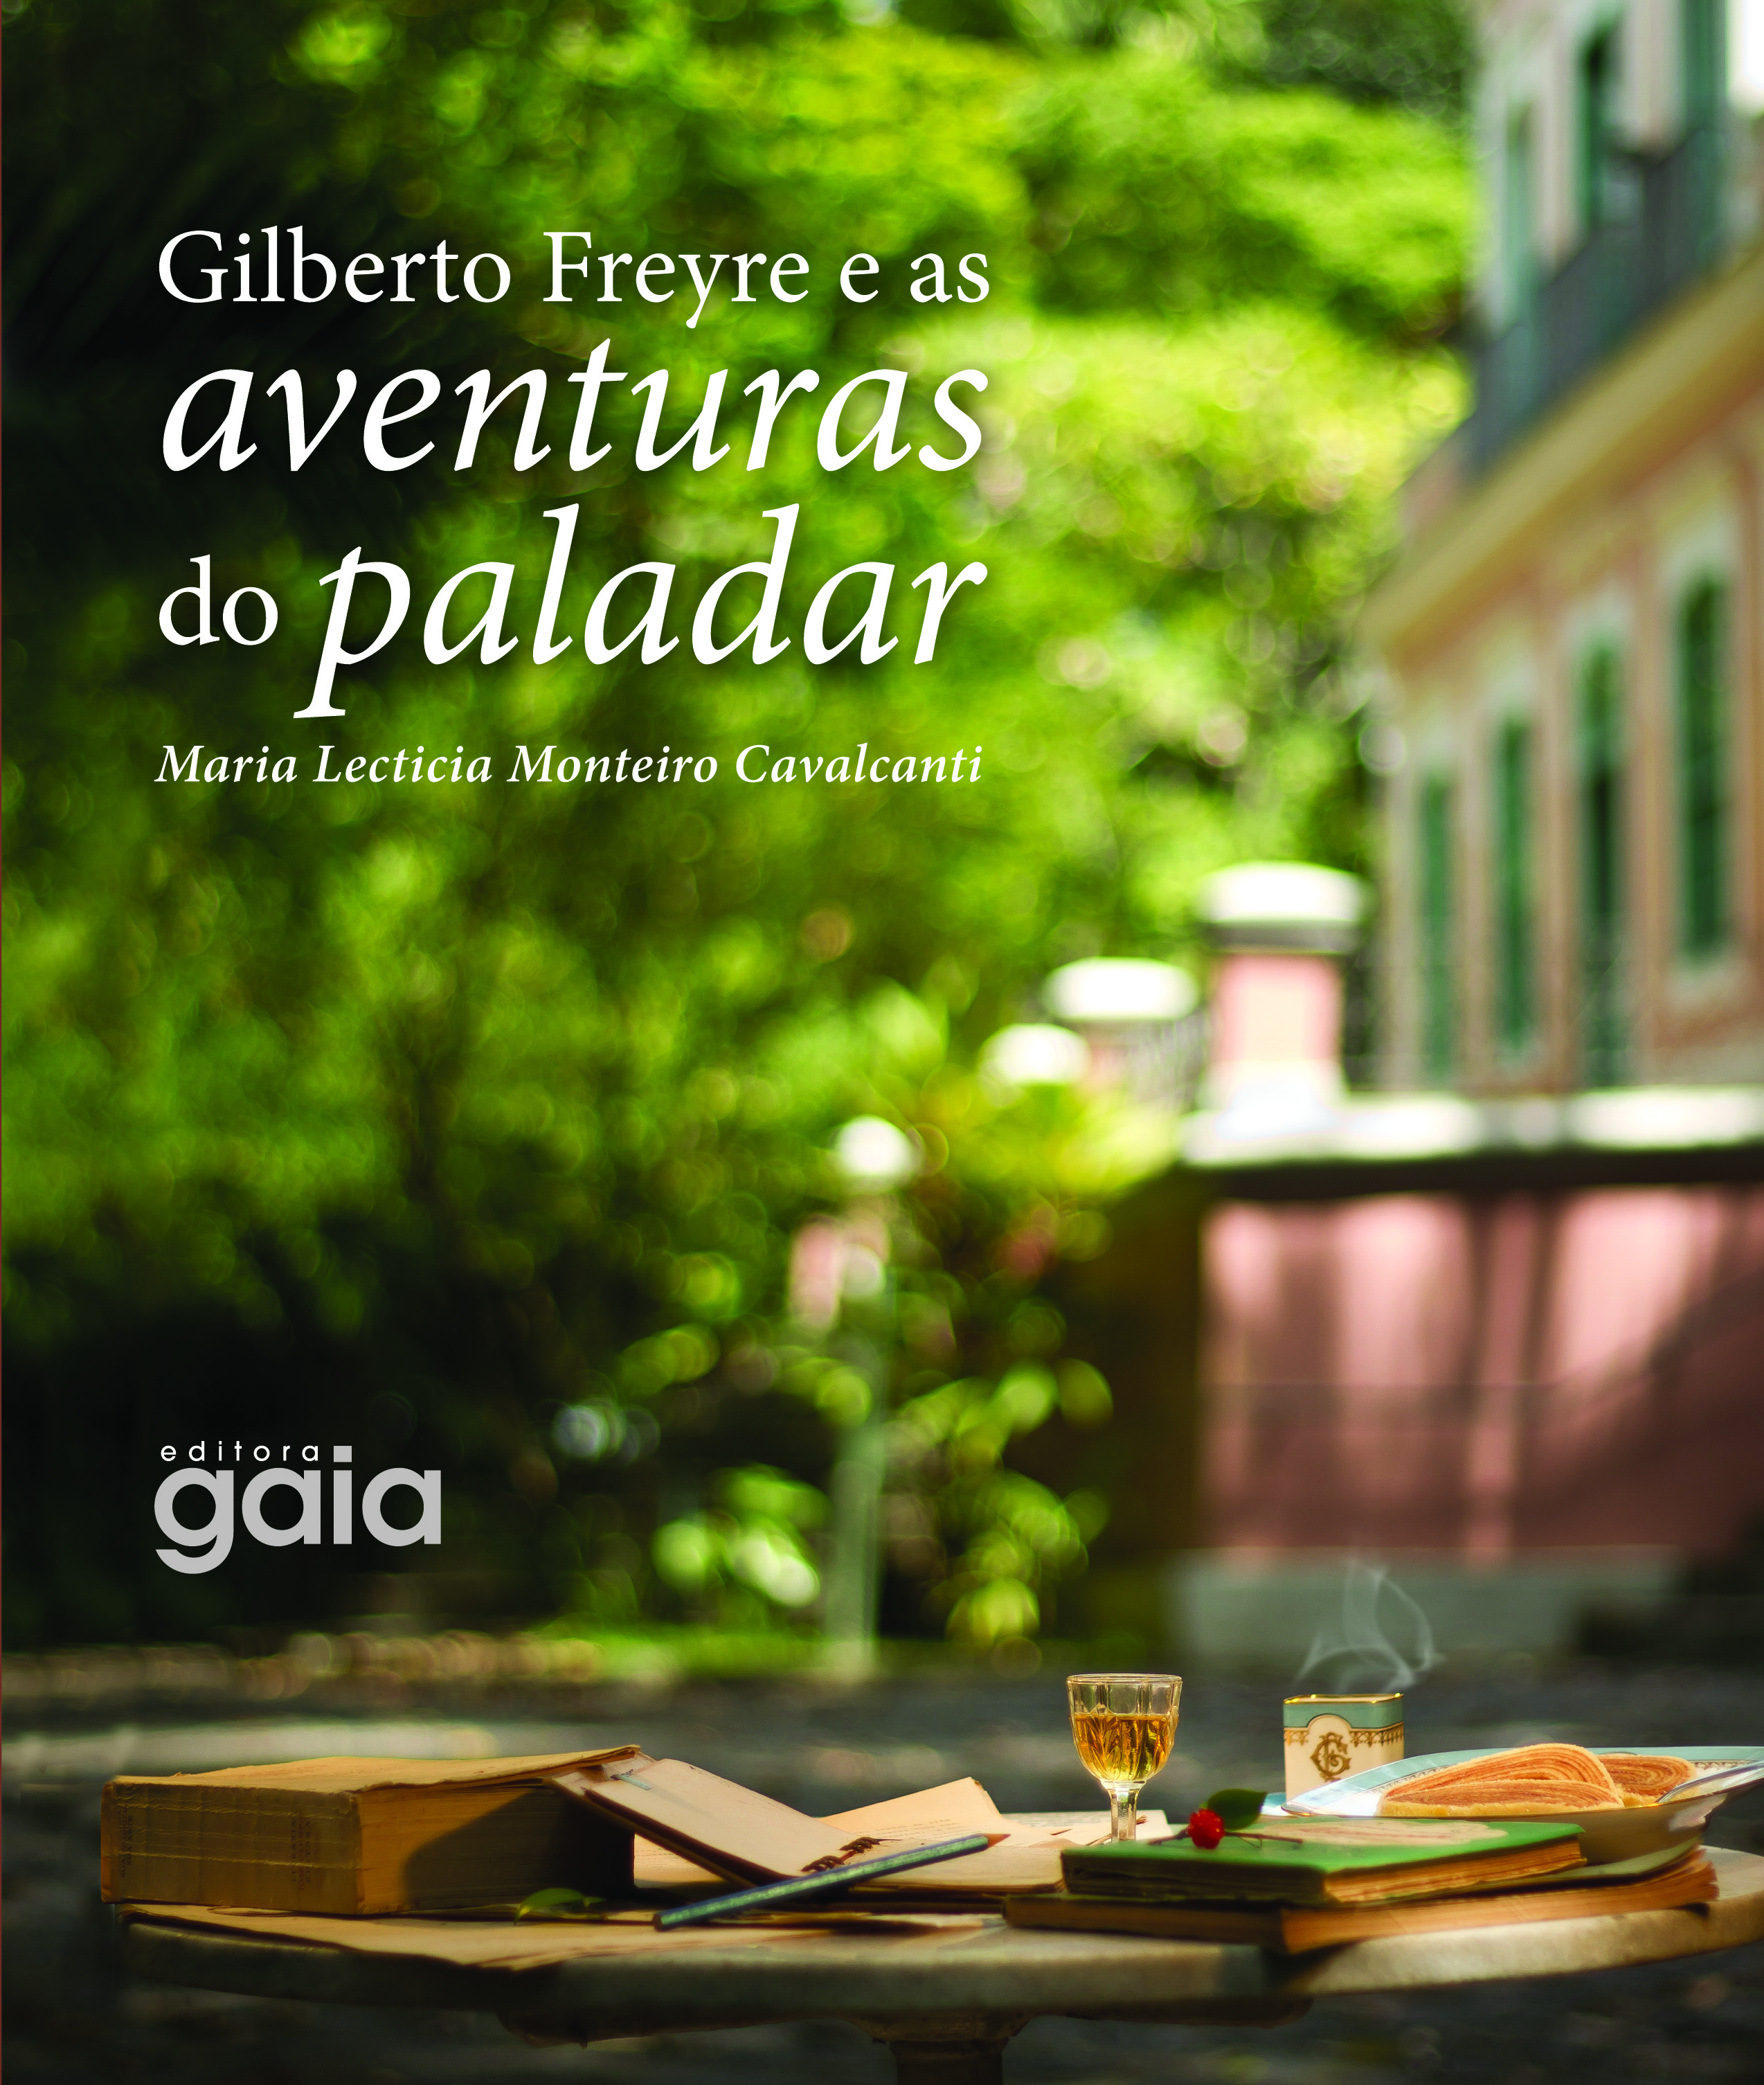 Gilberto Freyre and the taste adventures